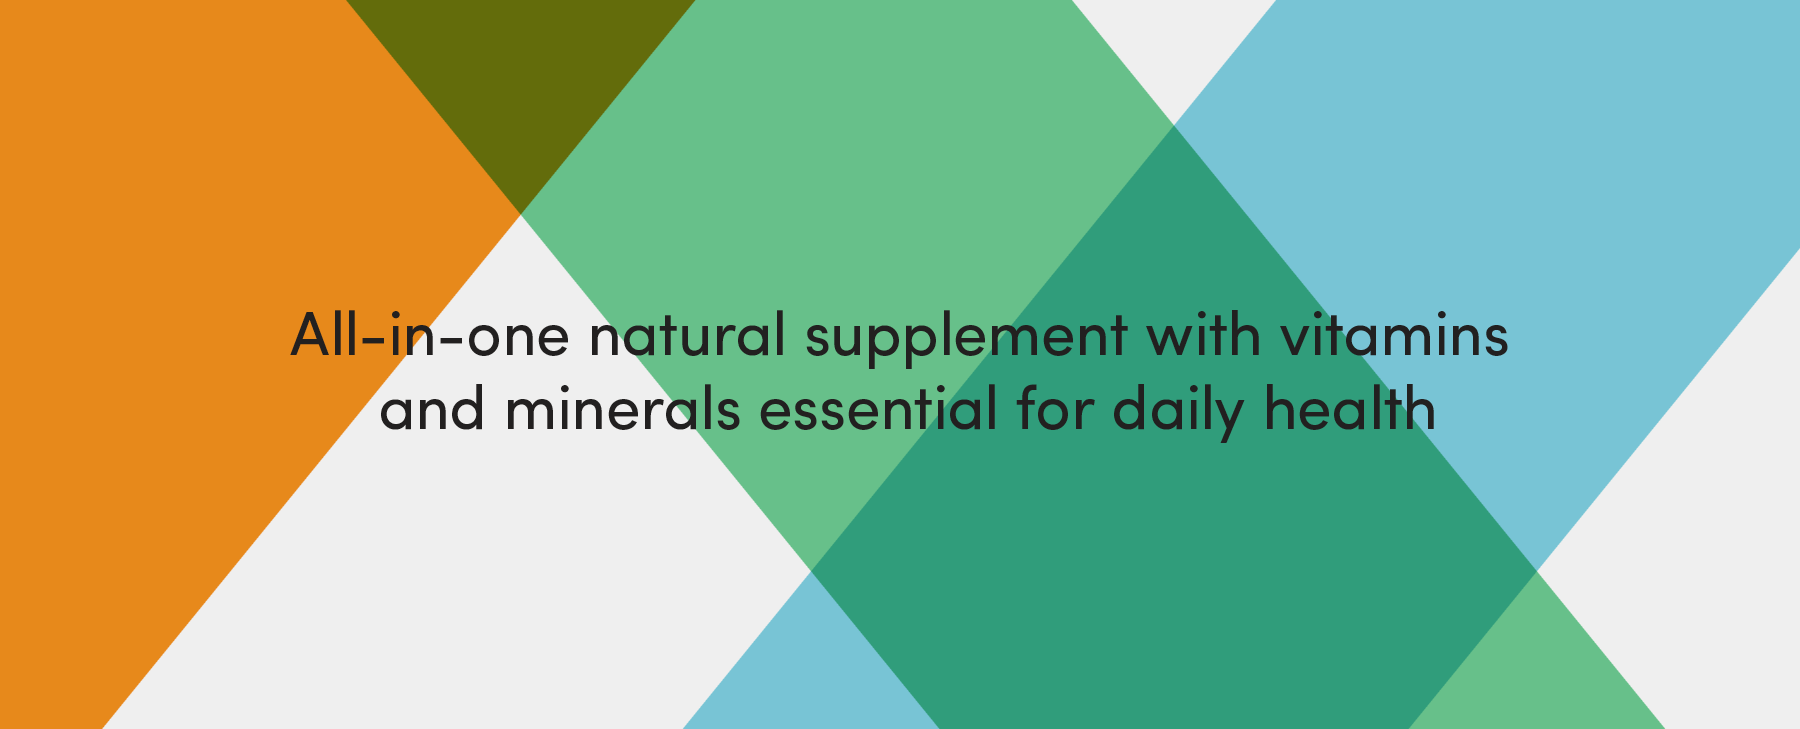 FYXX all in one natural supplement with vitamins and essential minerals